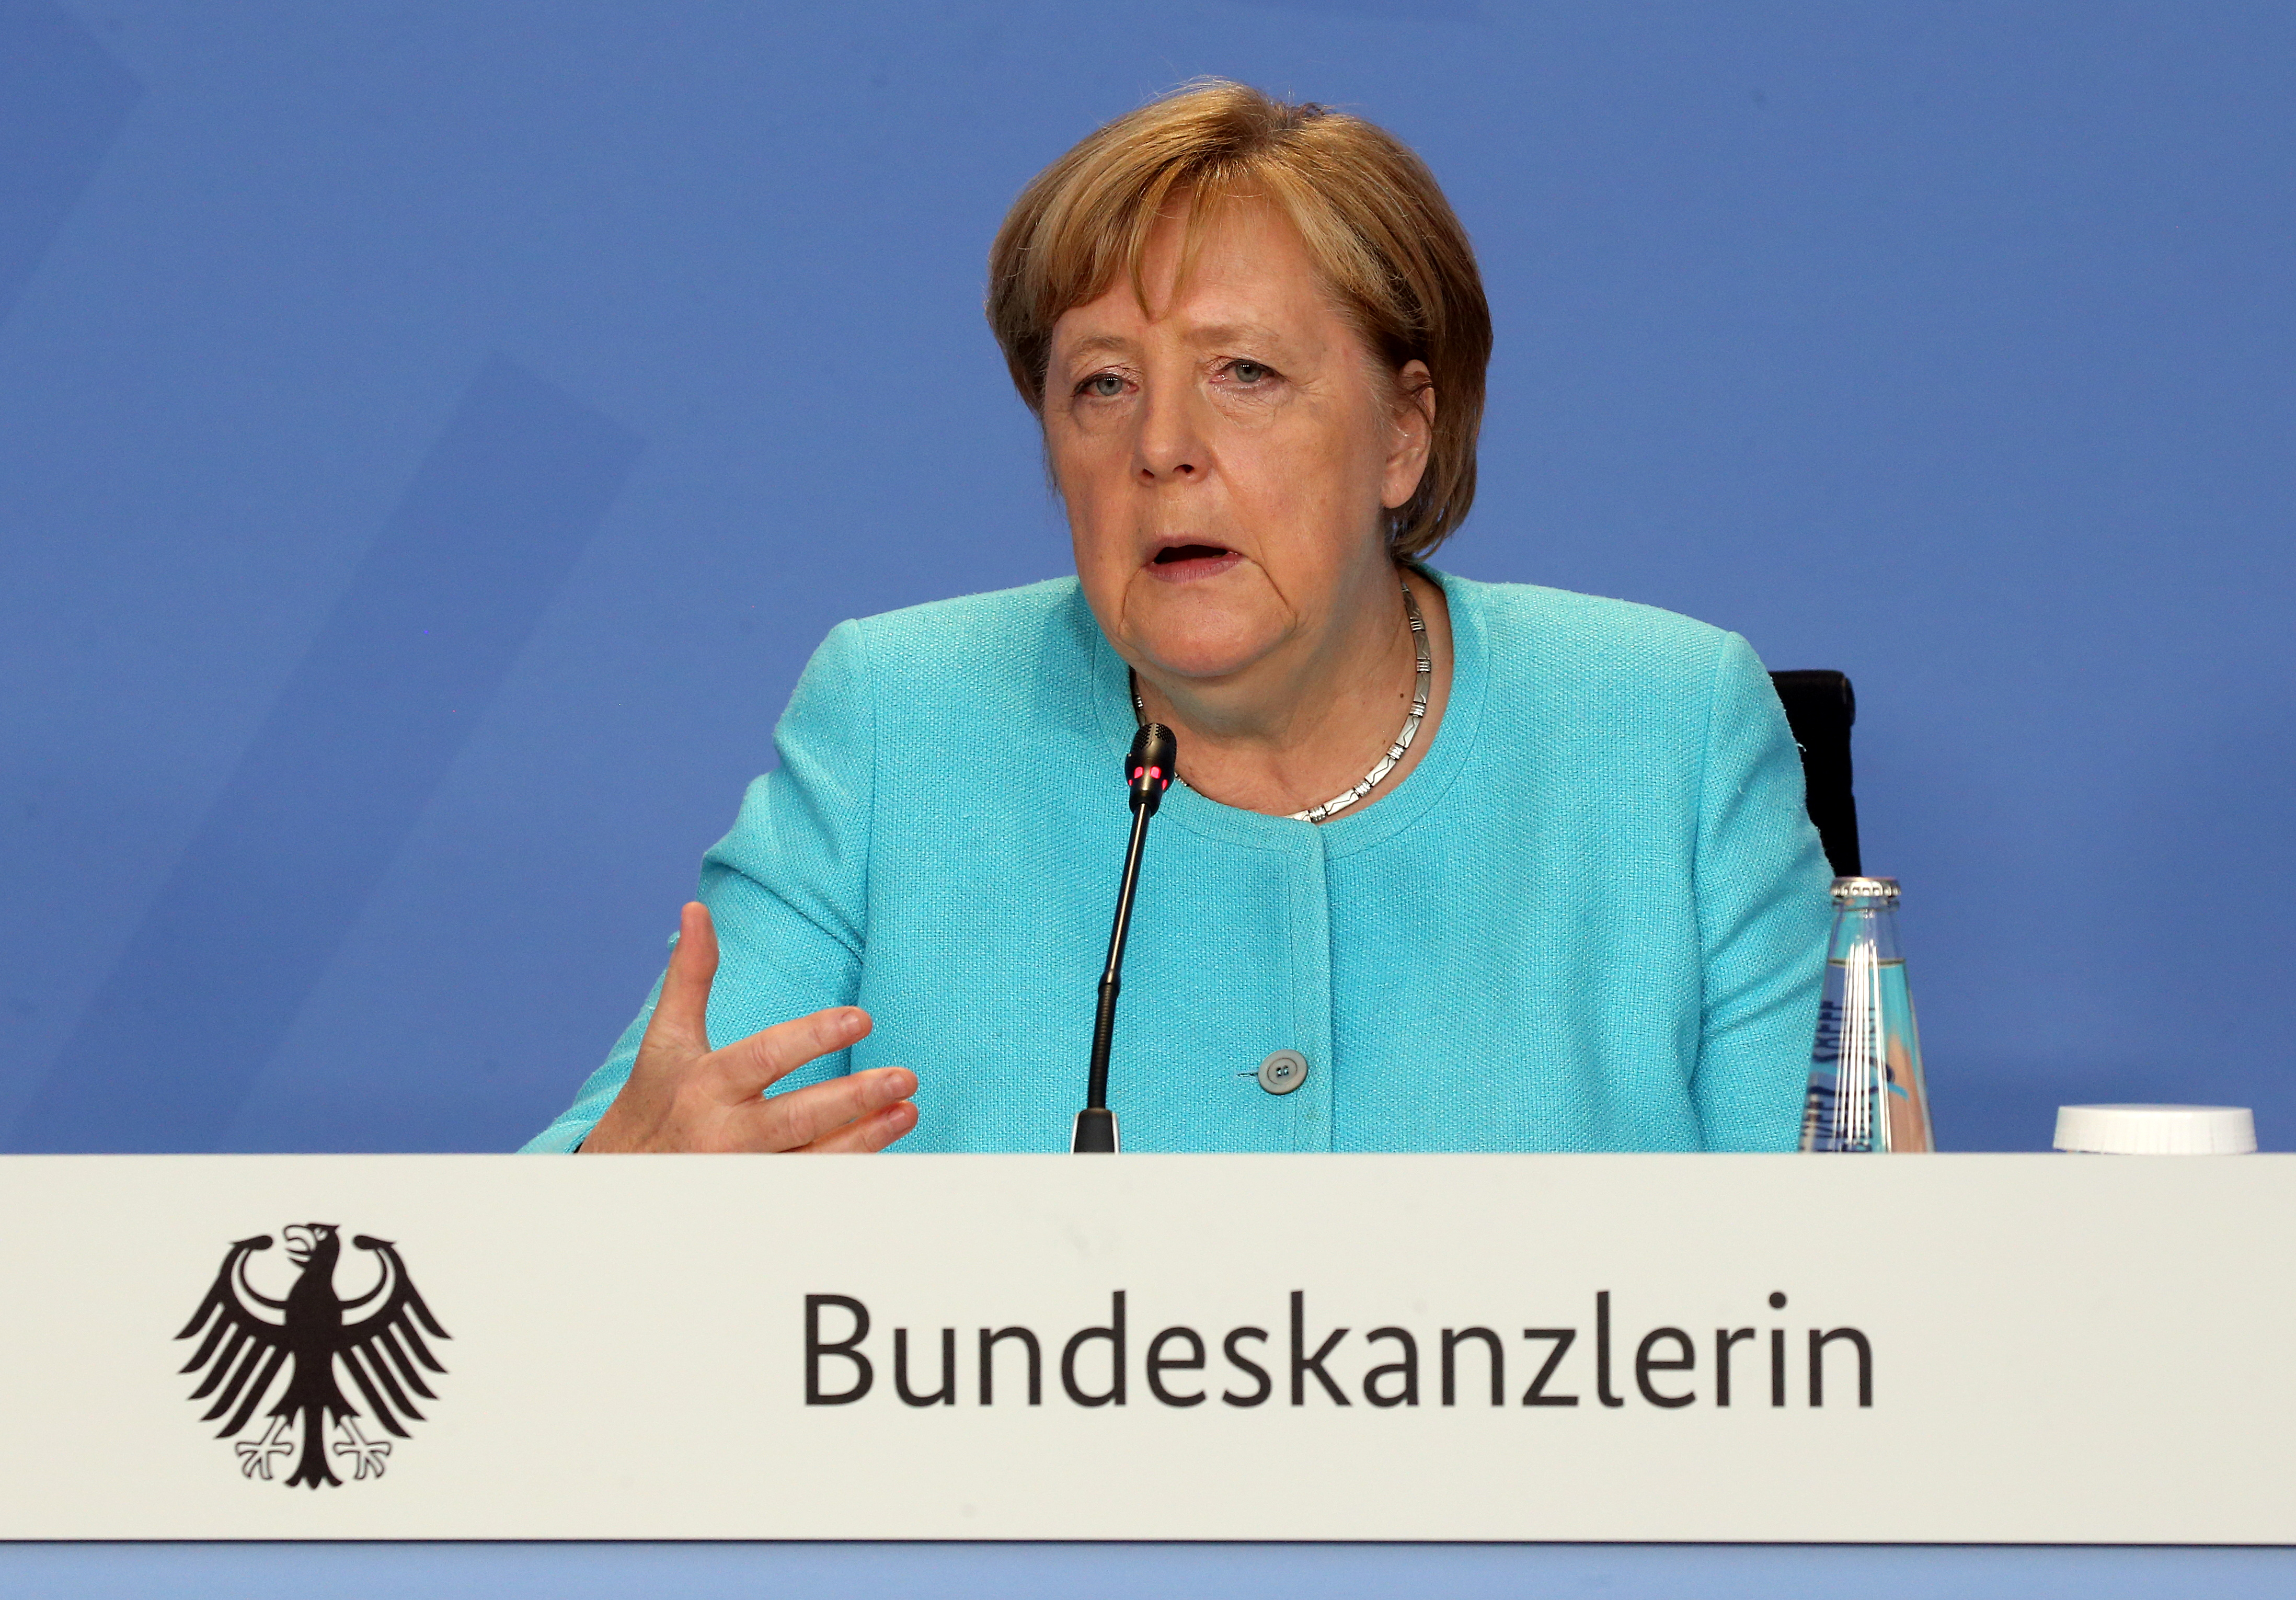 German Chancellor Angela Merkel attends a news conference after talks with directors of the ILO, IMF, OECD, World Bank and more to discuss questions on the current state of the global economic situation, in Berlin, Germany August 26, 2021. Wolfgang Kumm/Pool via REUTERS